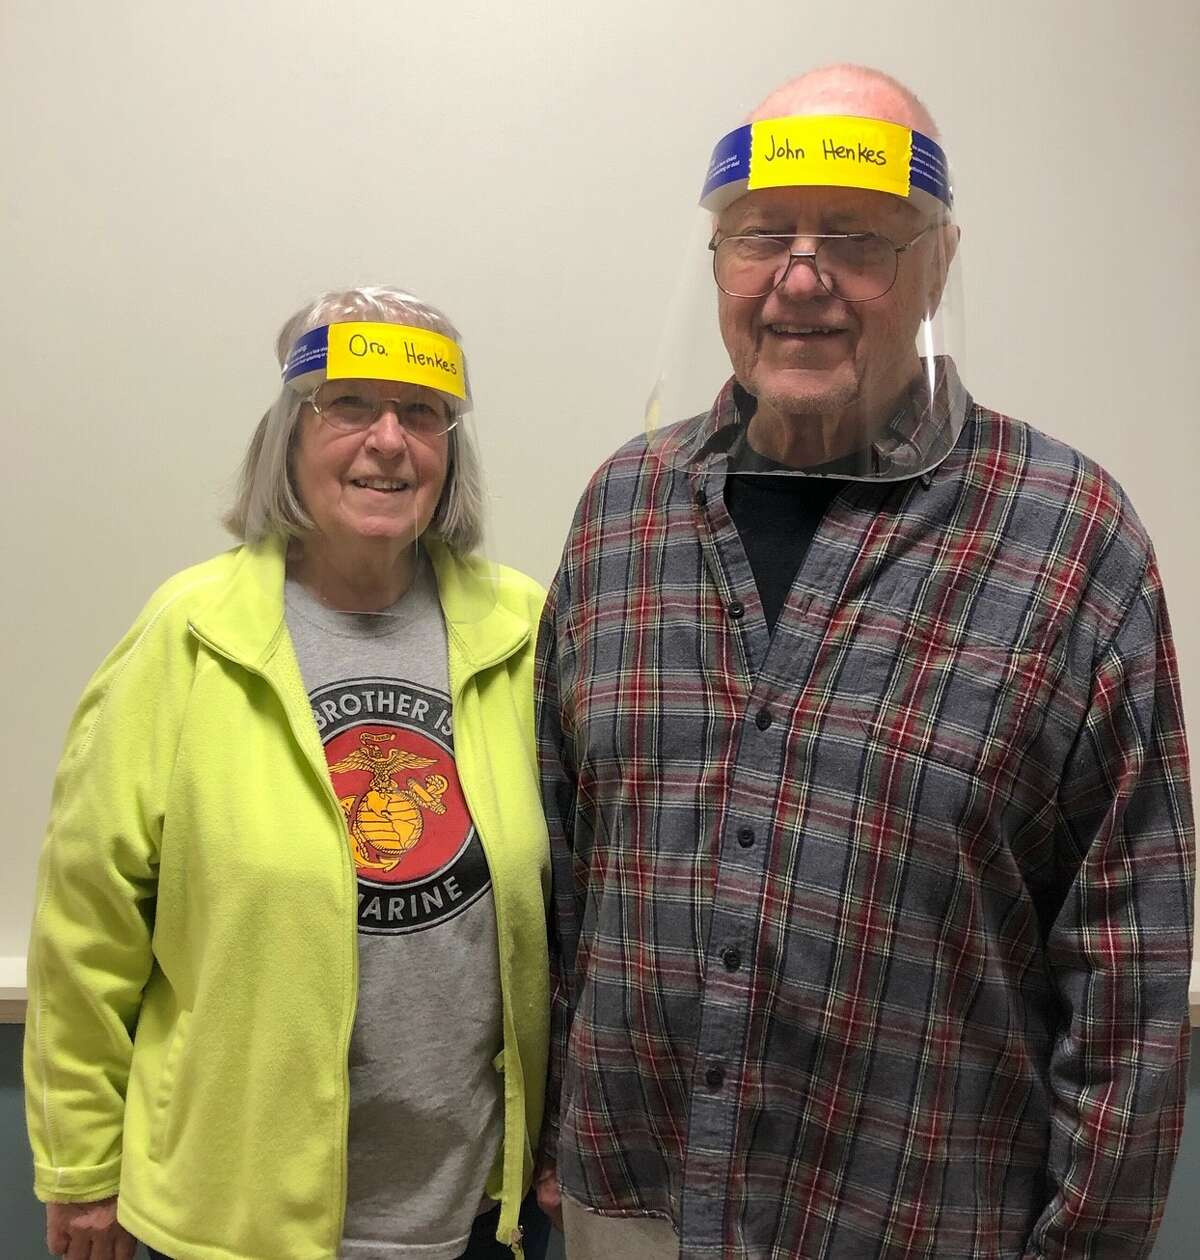 Beltrone residents Ora and John Henkes sporting their personally monogrammed Face Shields. Safe, attractive and practical. Diane Conroy LaCivita